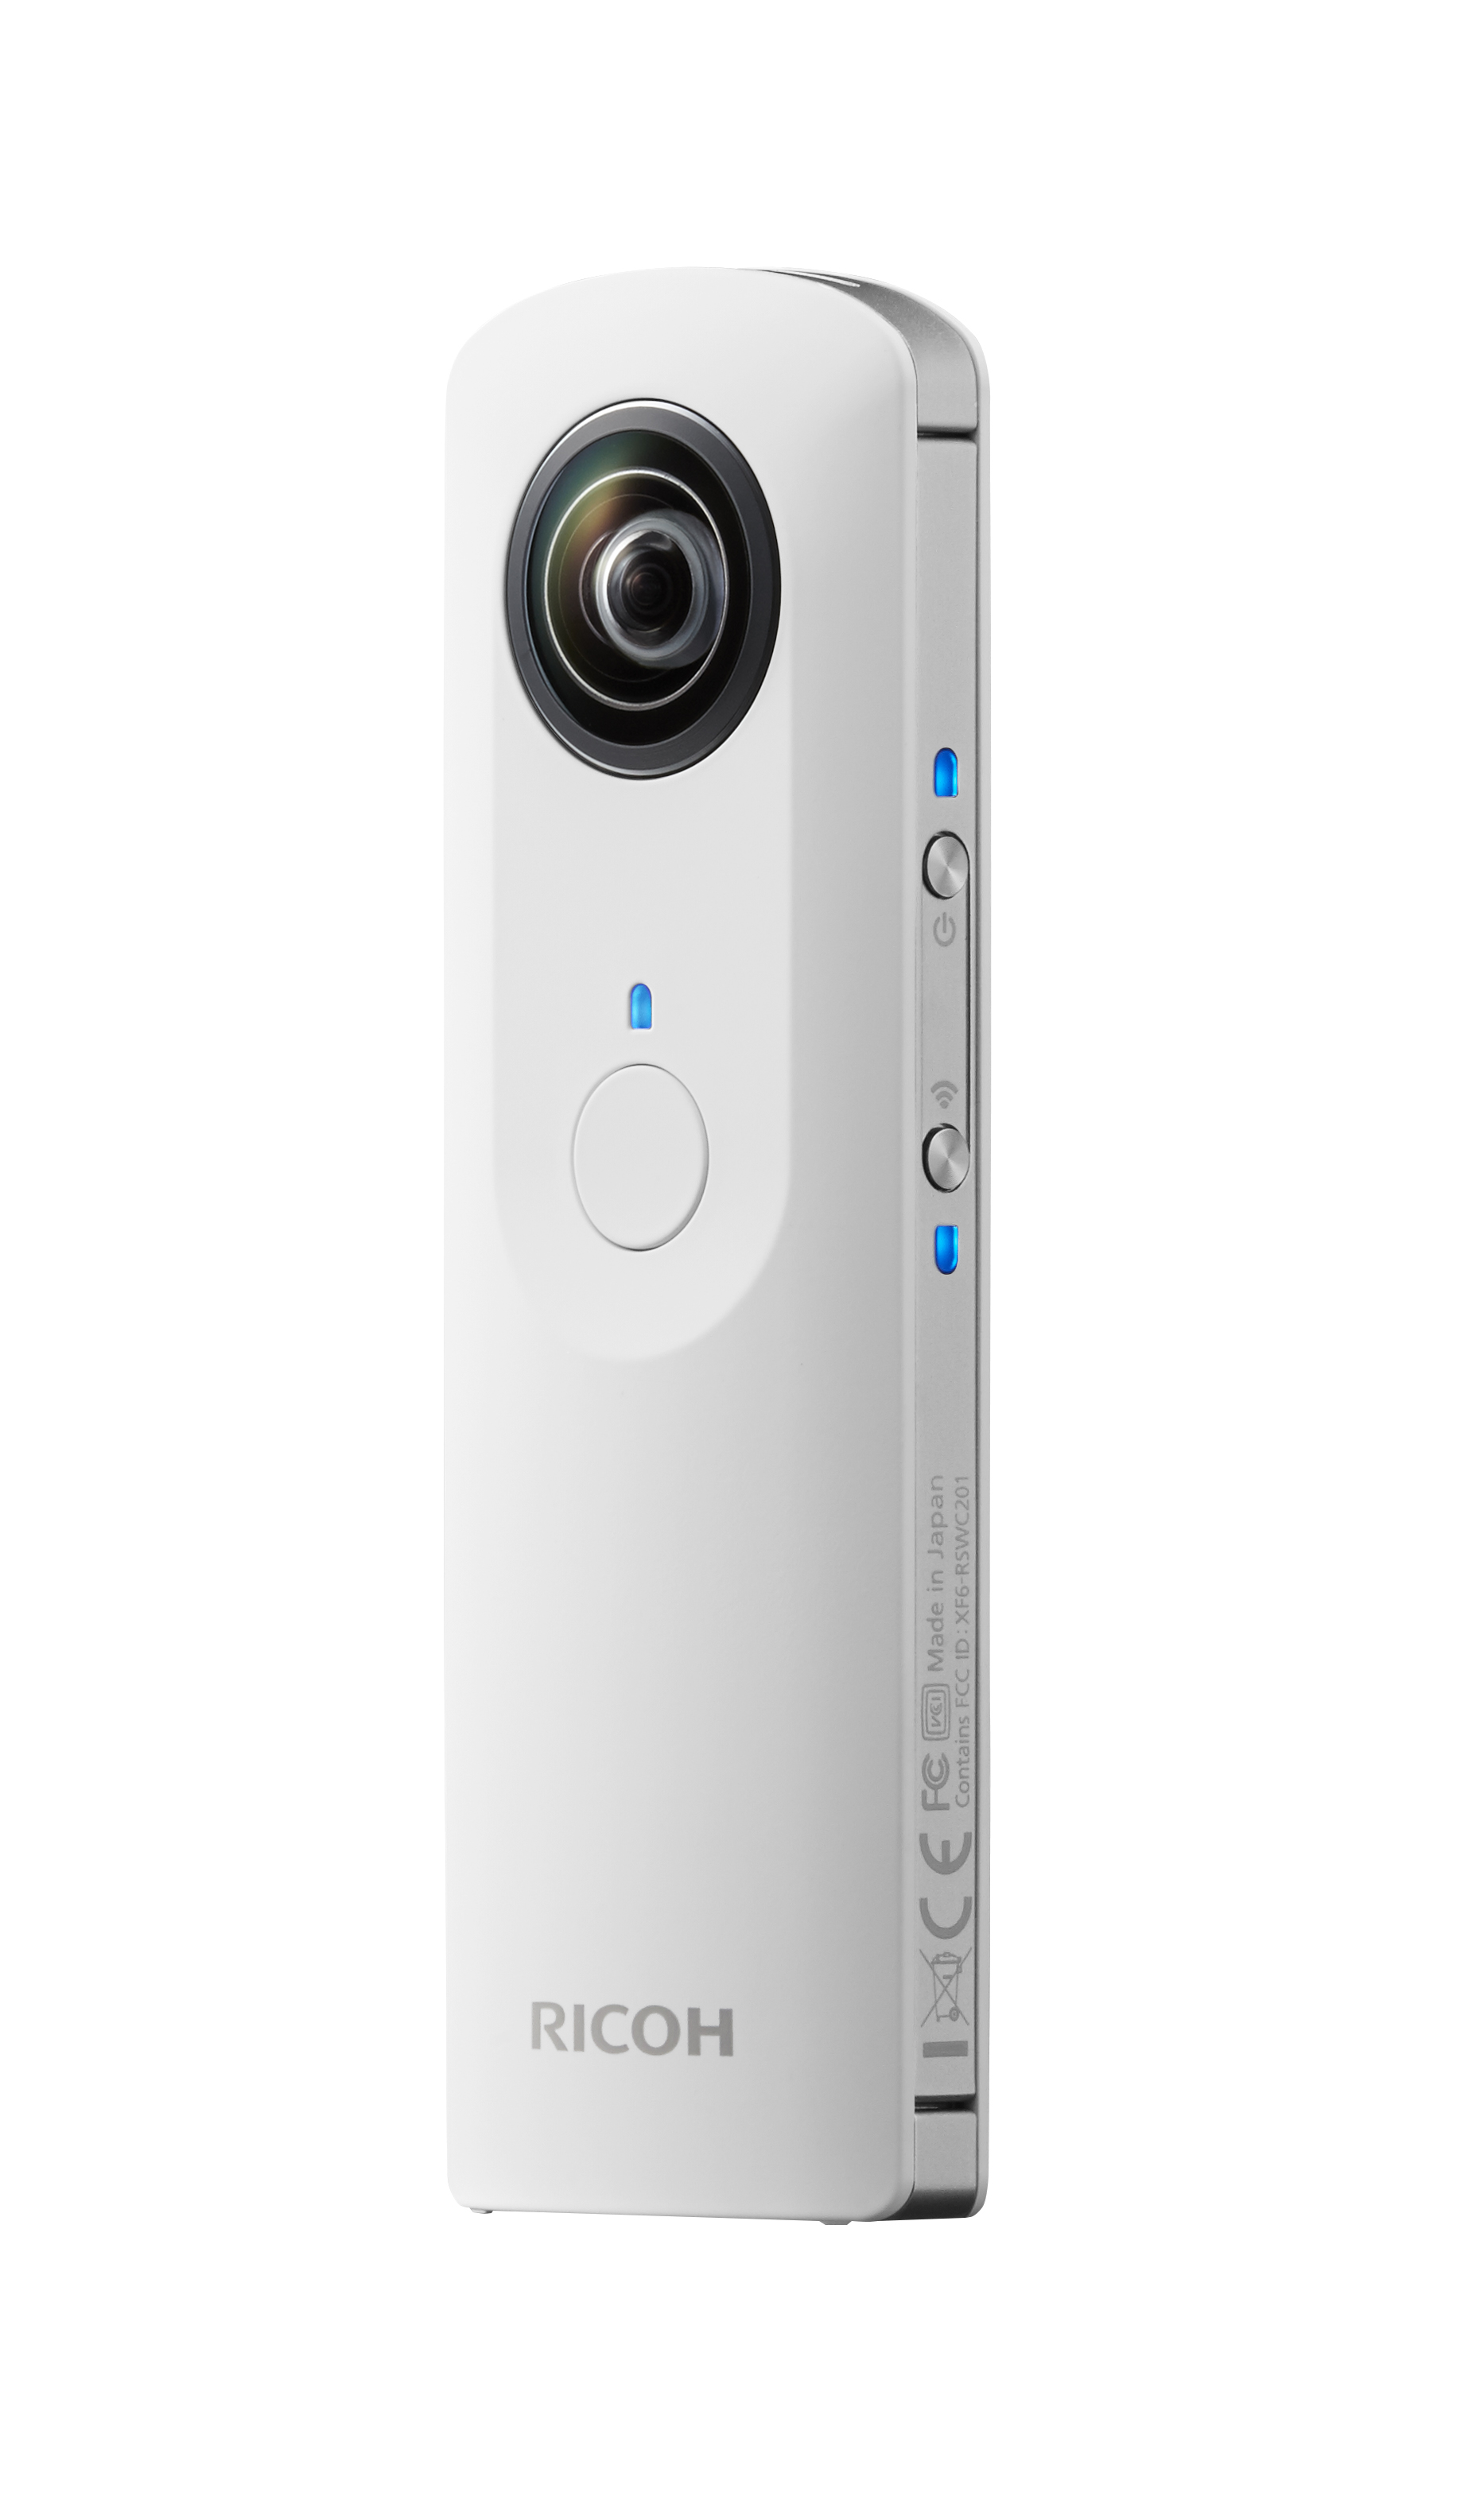 MAIN CUT THETA back right on Ricoh launches $399 Theta camera bringing fully spherical images in a single shot